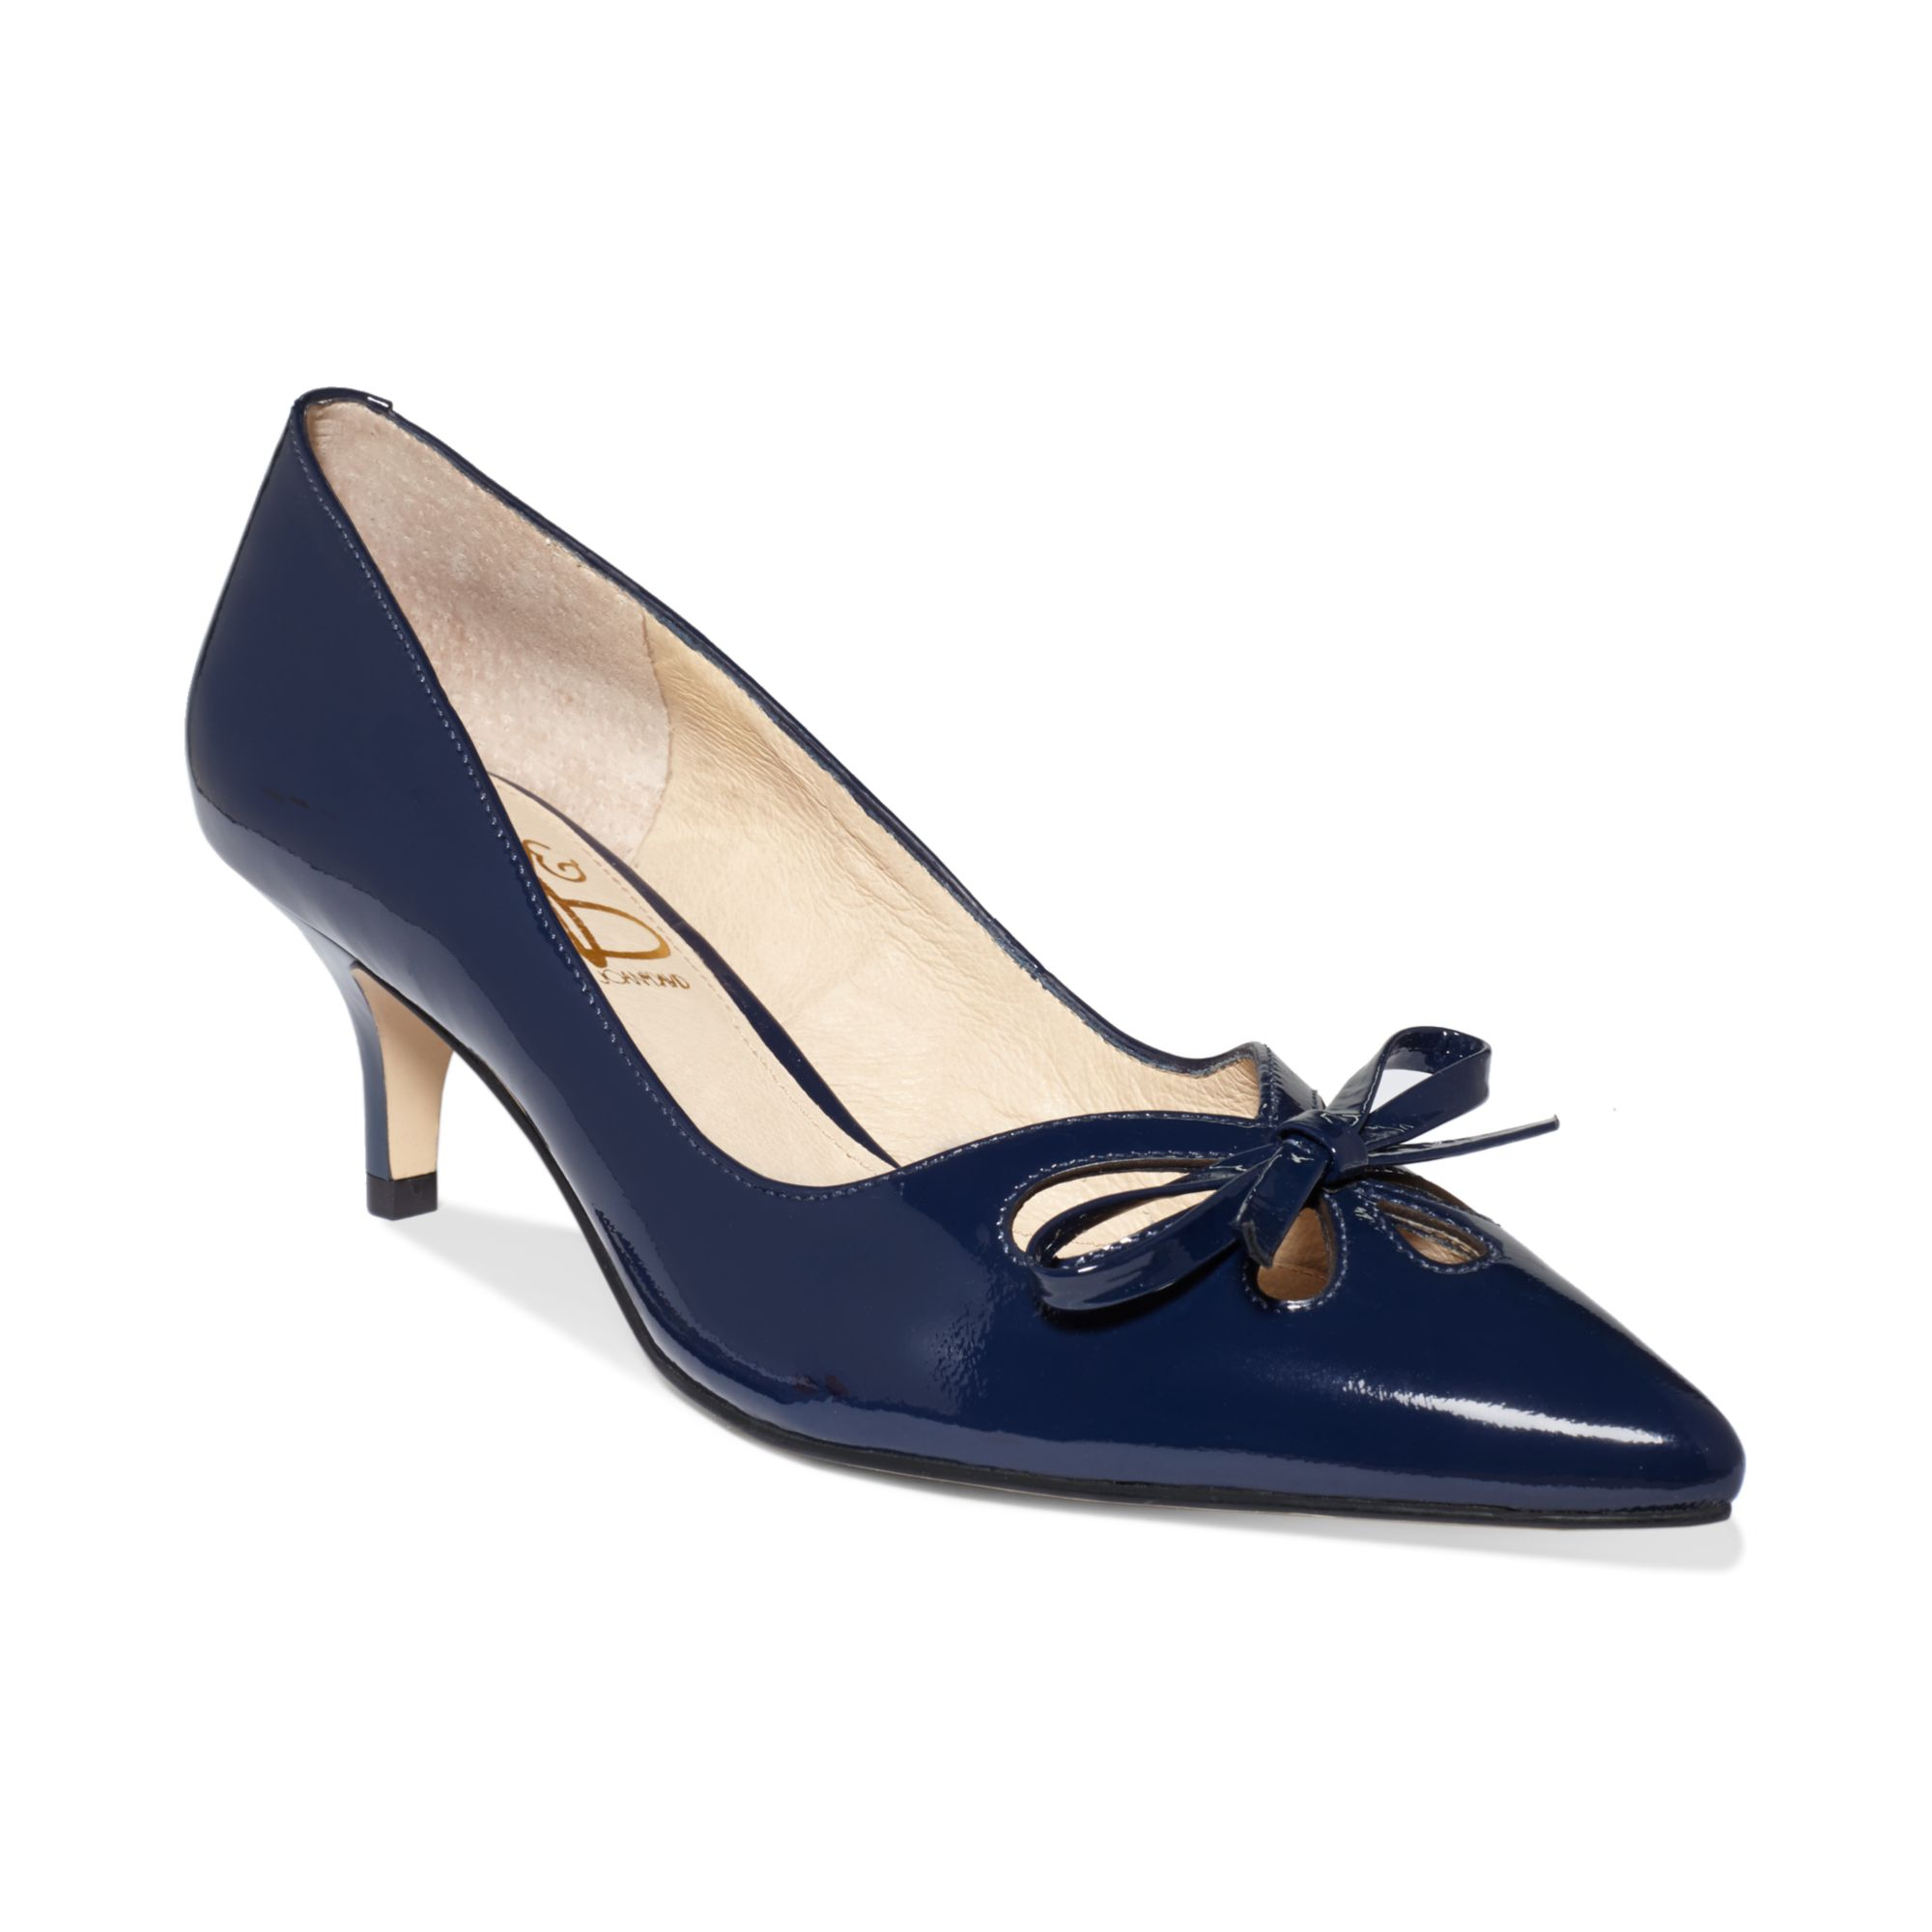 Navy Kitten Heel Pumps A7bi3IRK